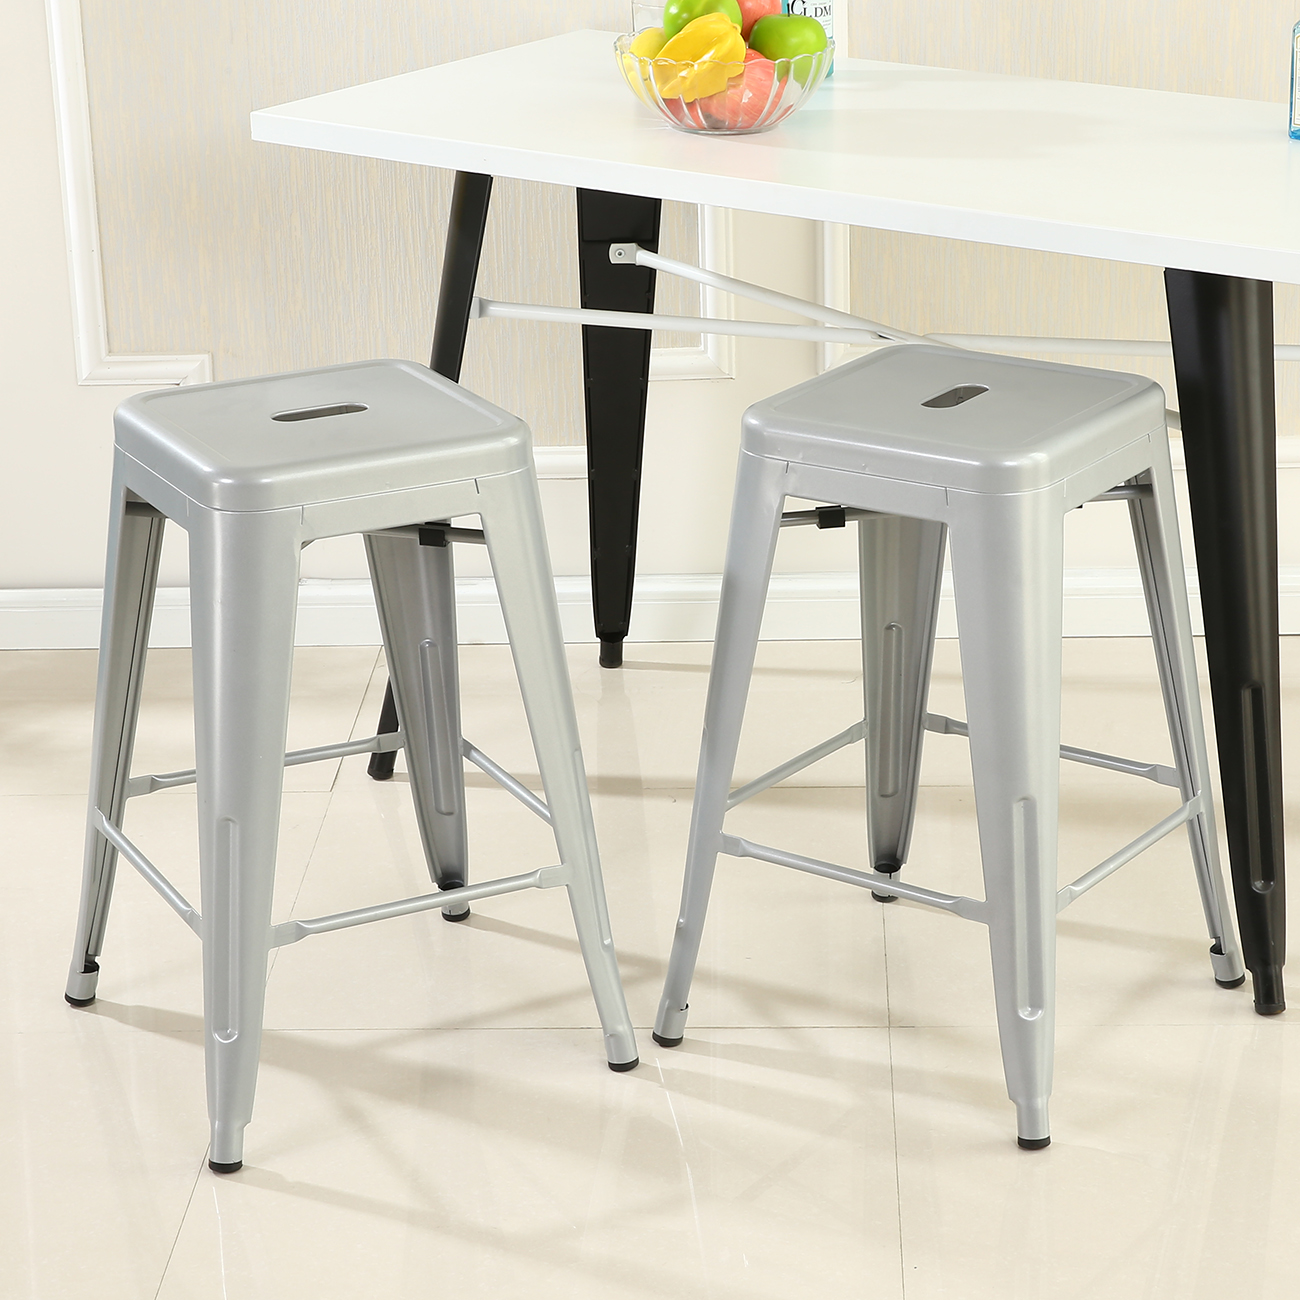 Modern Counter Height Stools 2 Pcs Modern Style Bar Stool Metal Stackable Stools Height